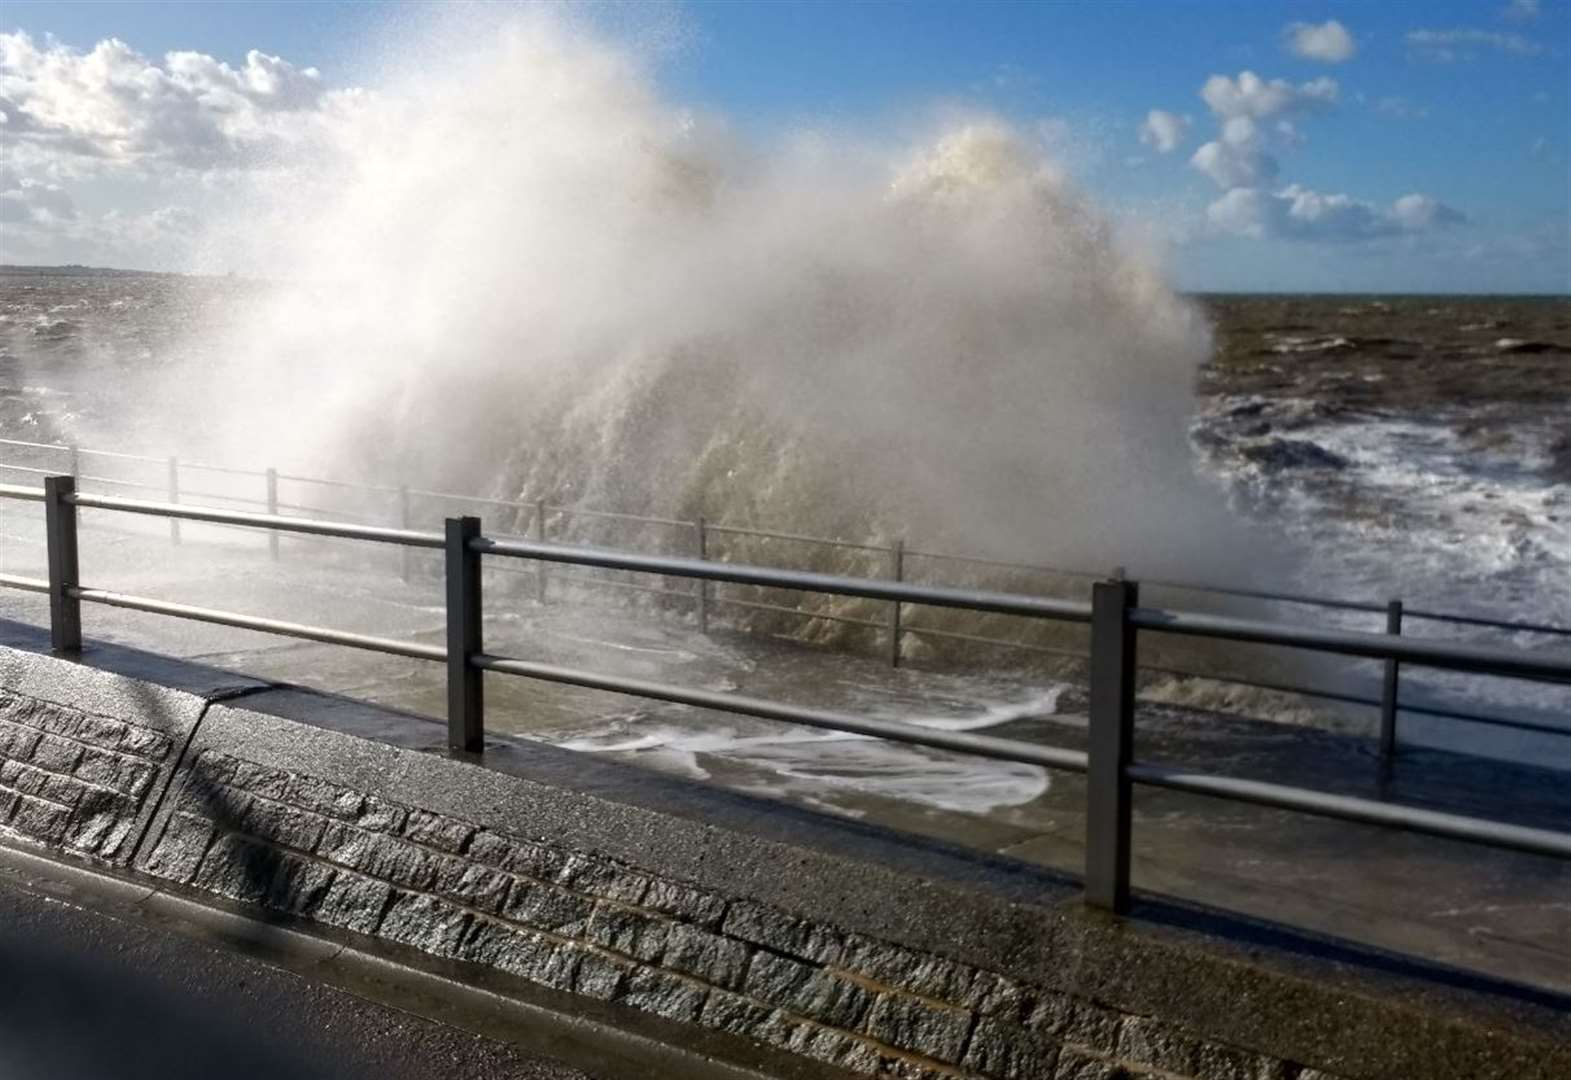 Flooding and power cuts warning